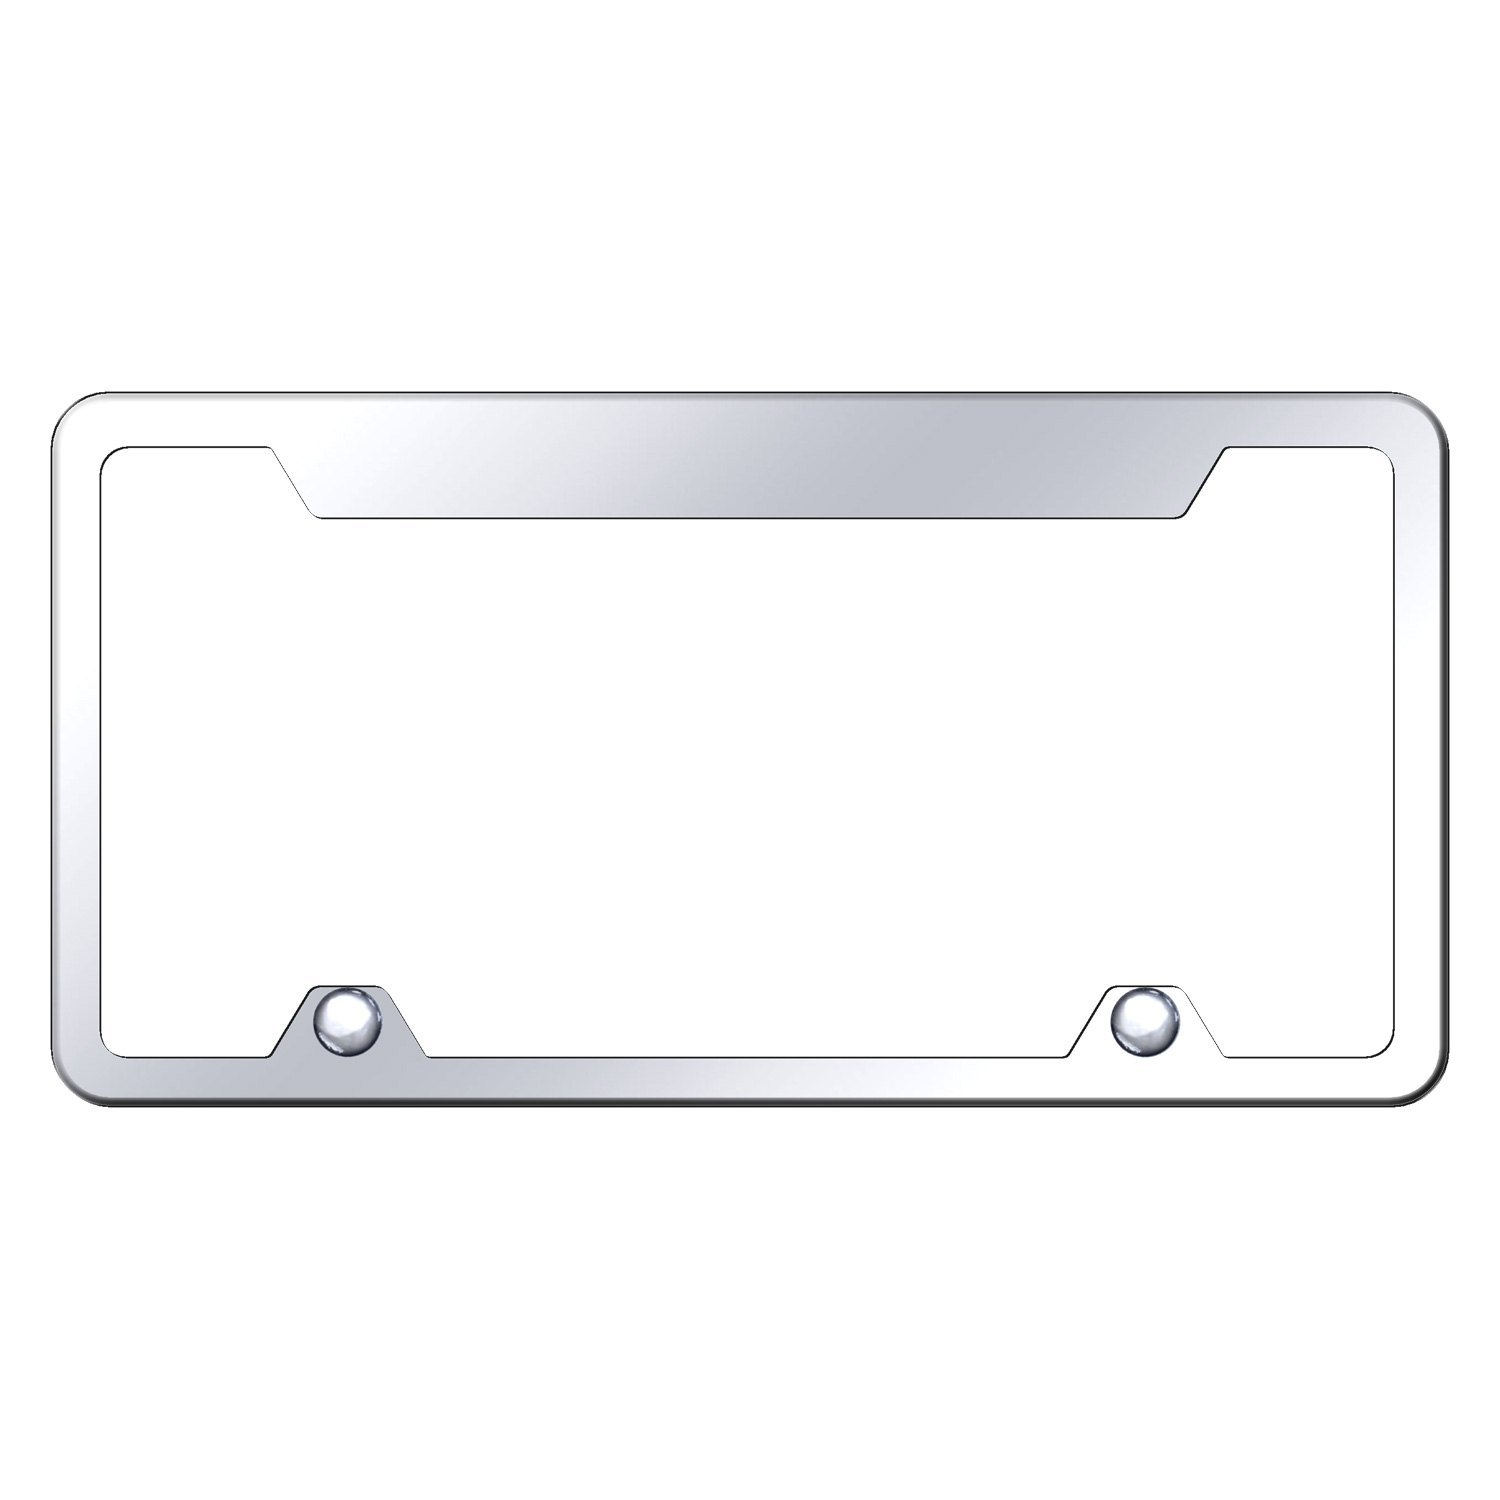 autogold wide top license plate frame